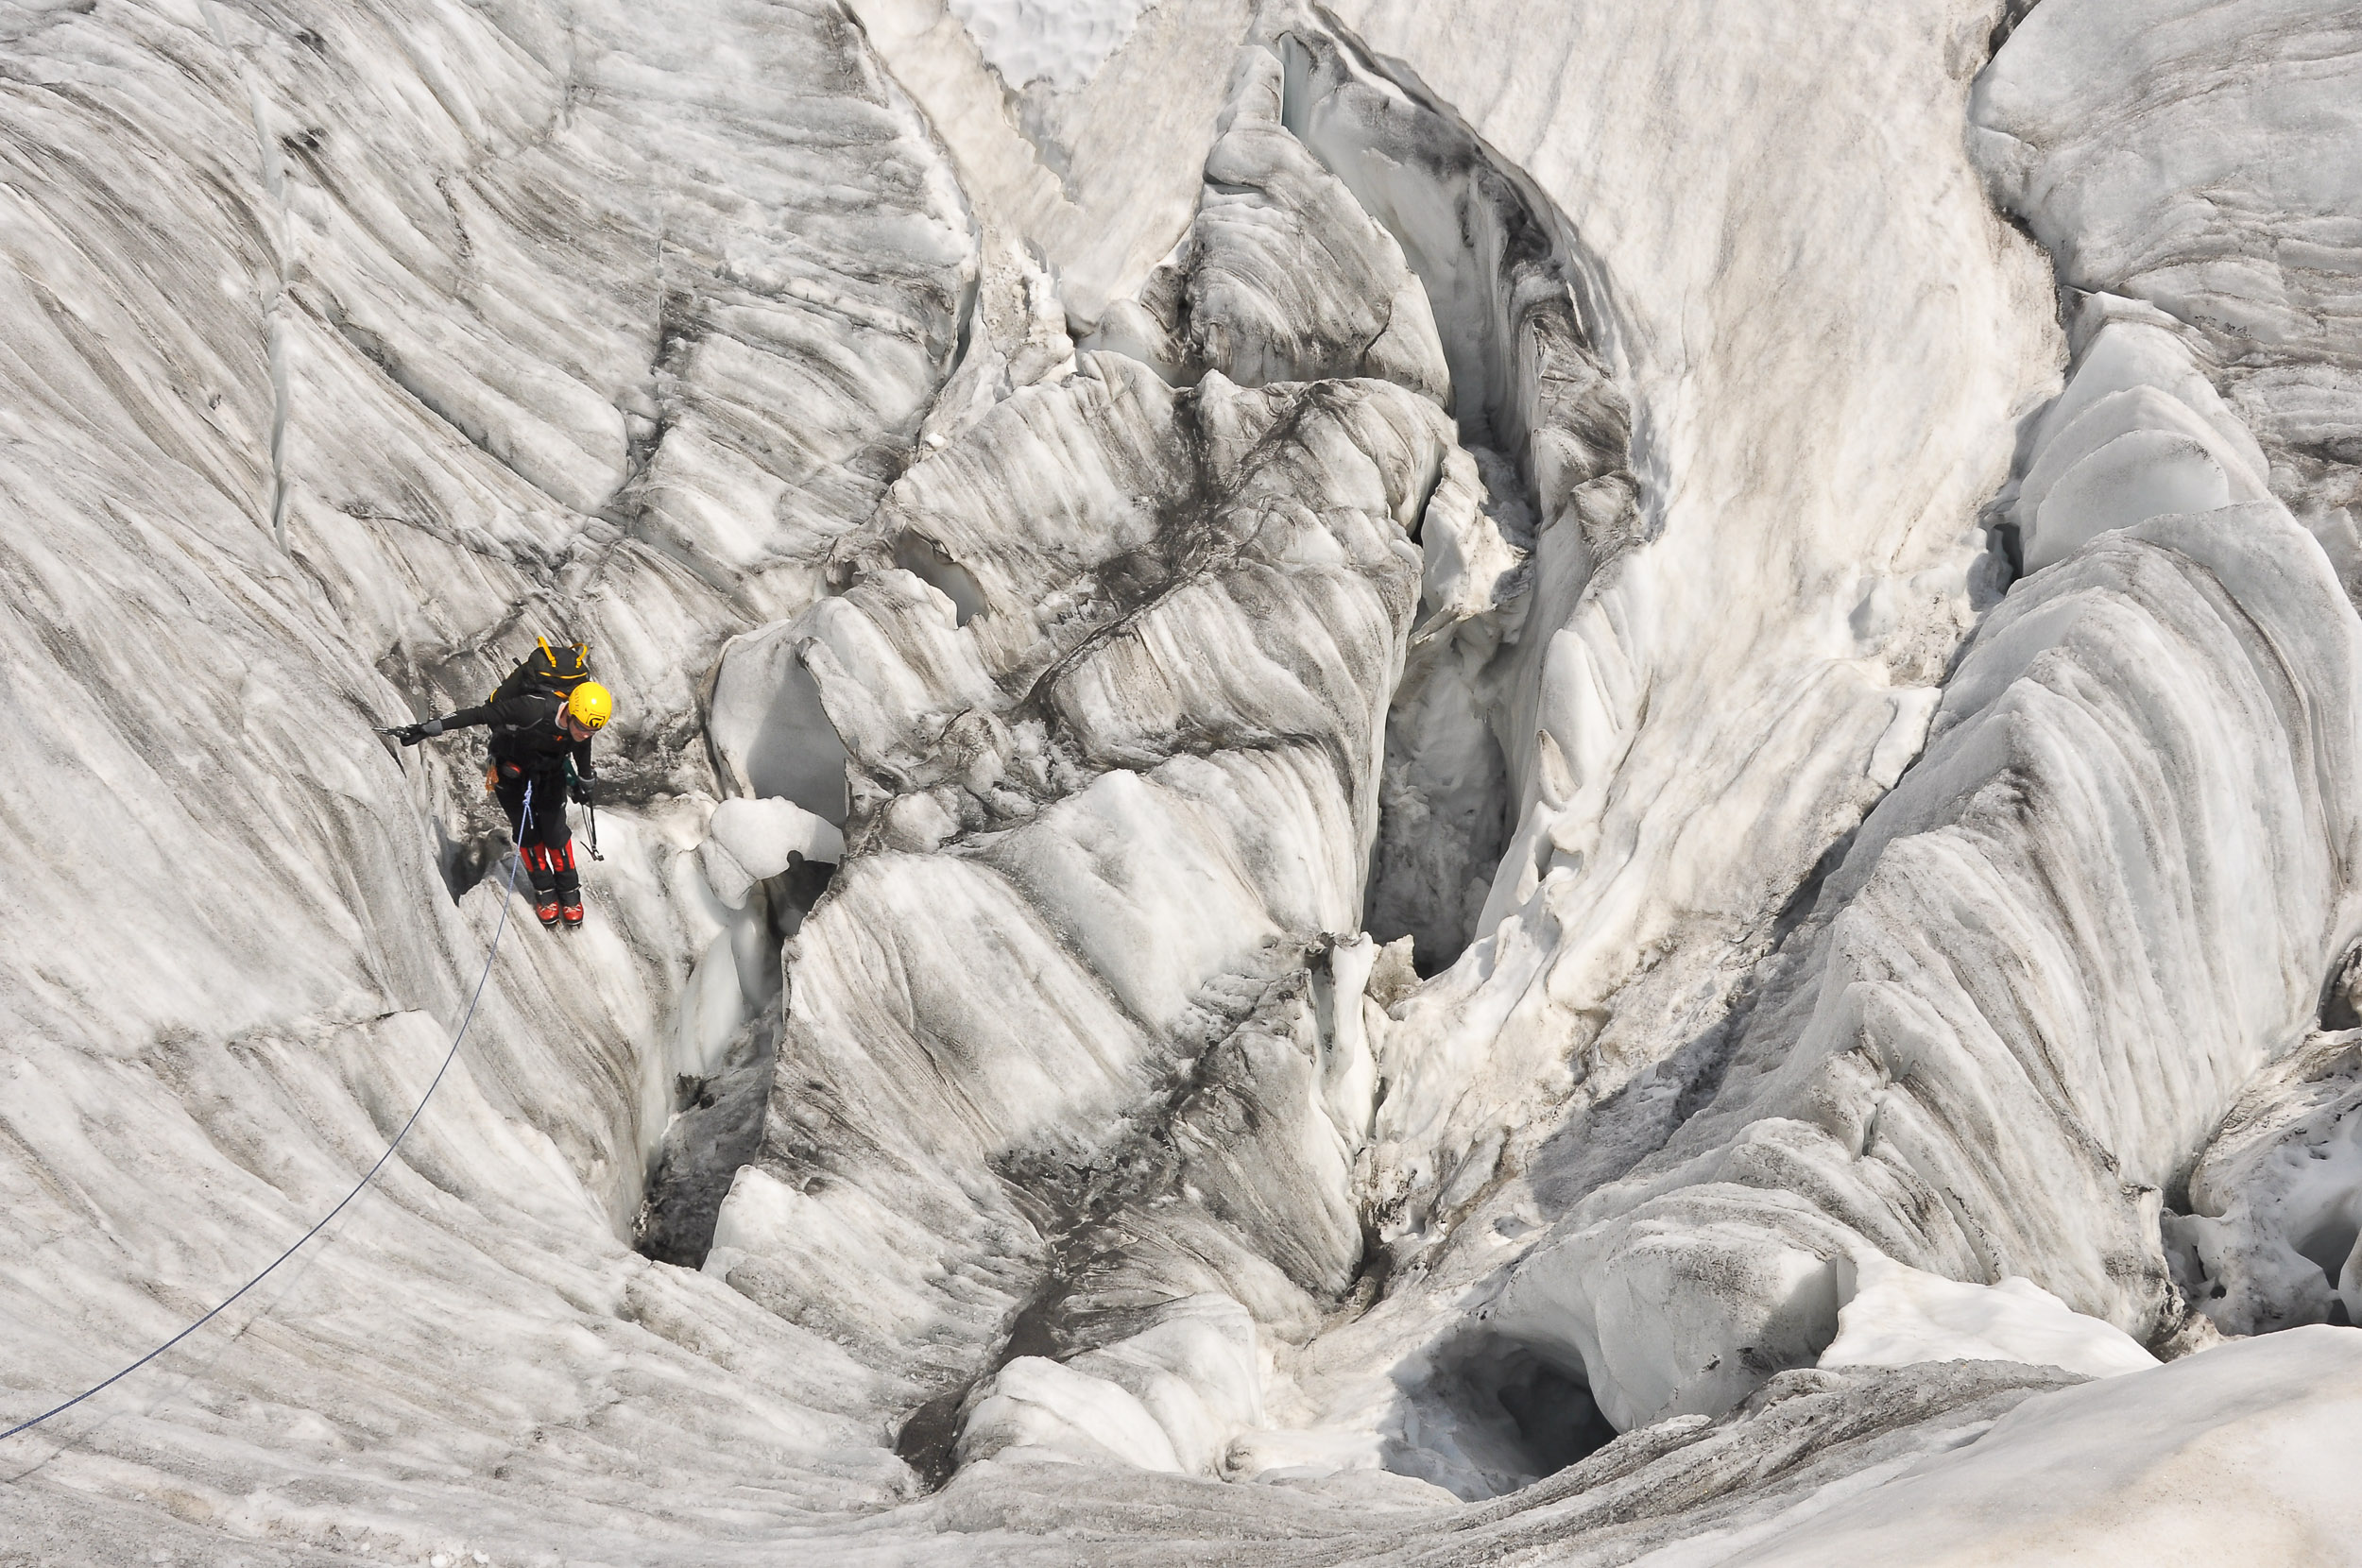 Climbing - French Alps